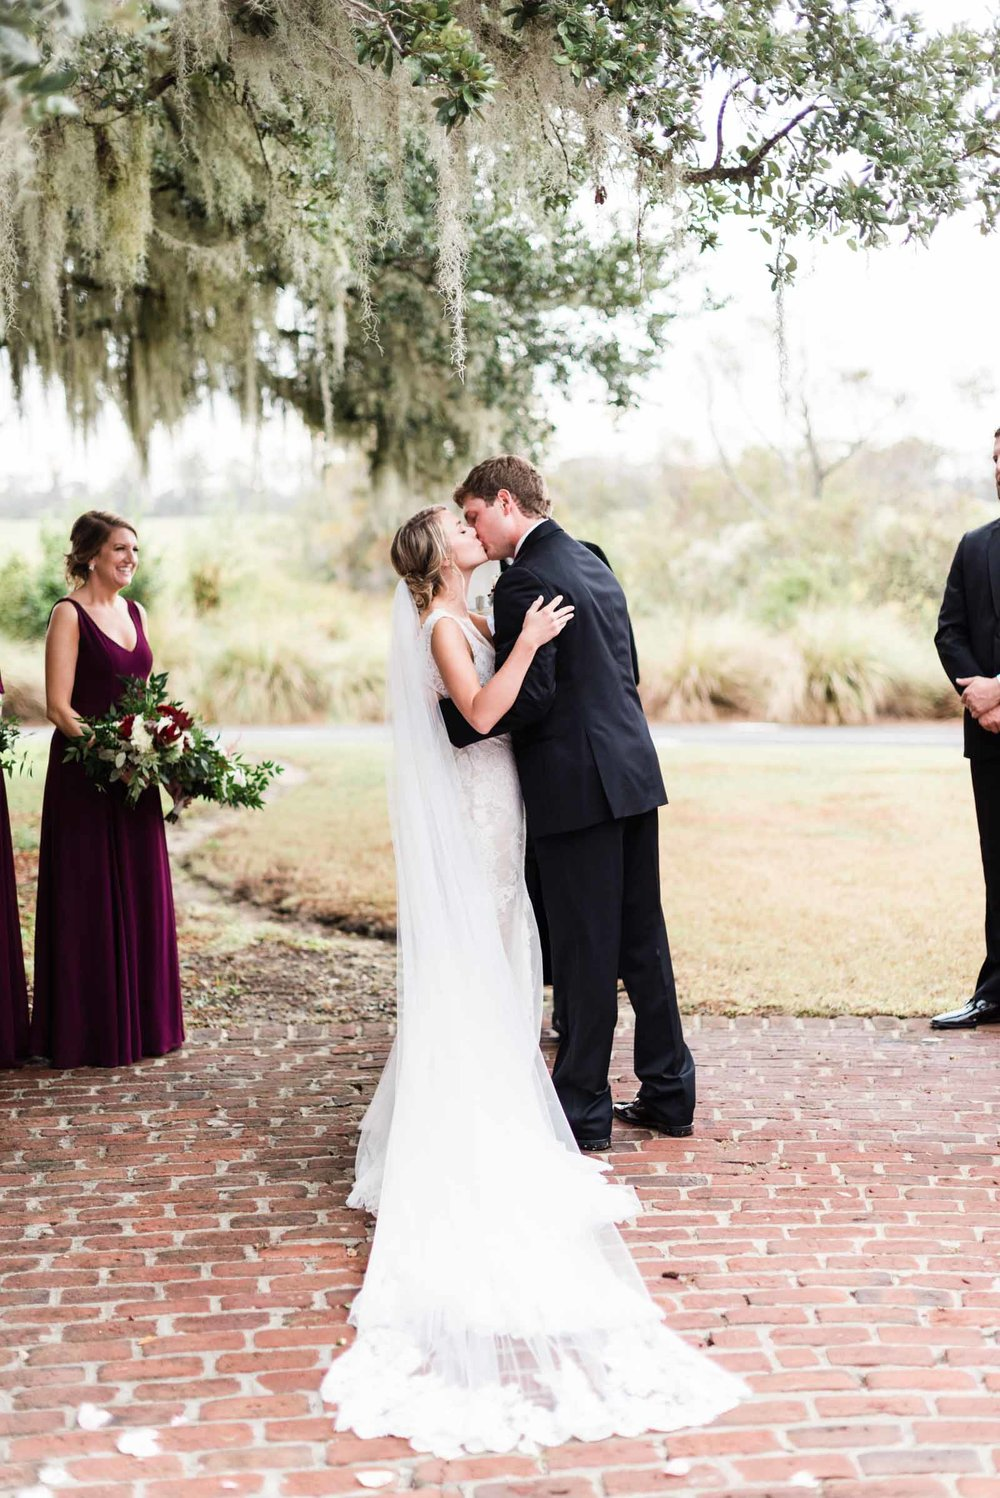 Wedding at Heritage Plantation in Pawley's Island_Markie Walden Photo-43.jpg